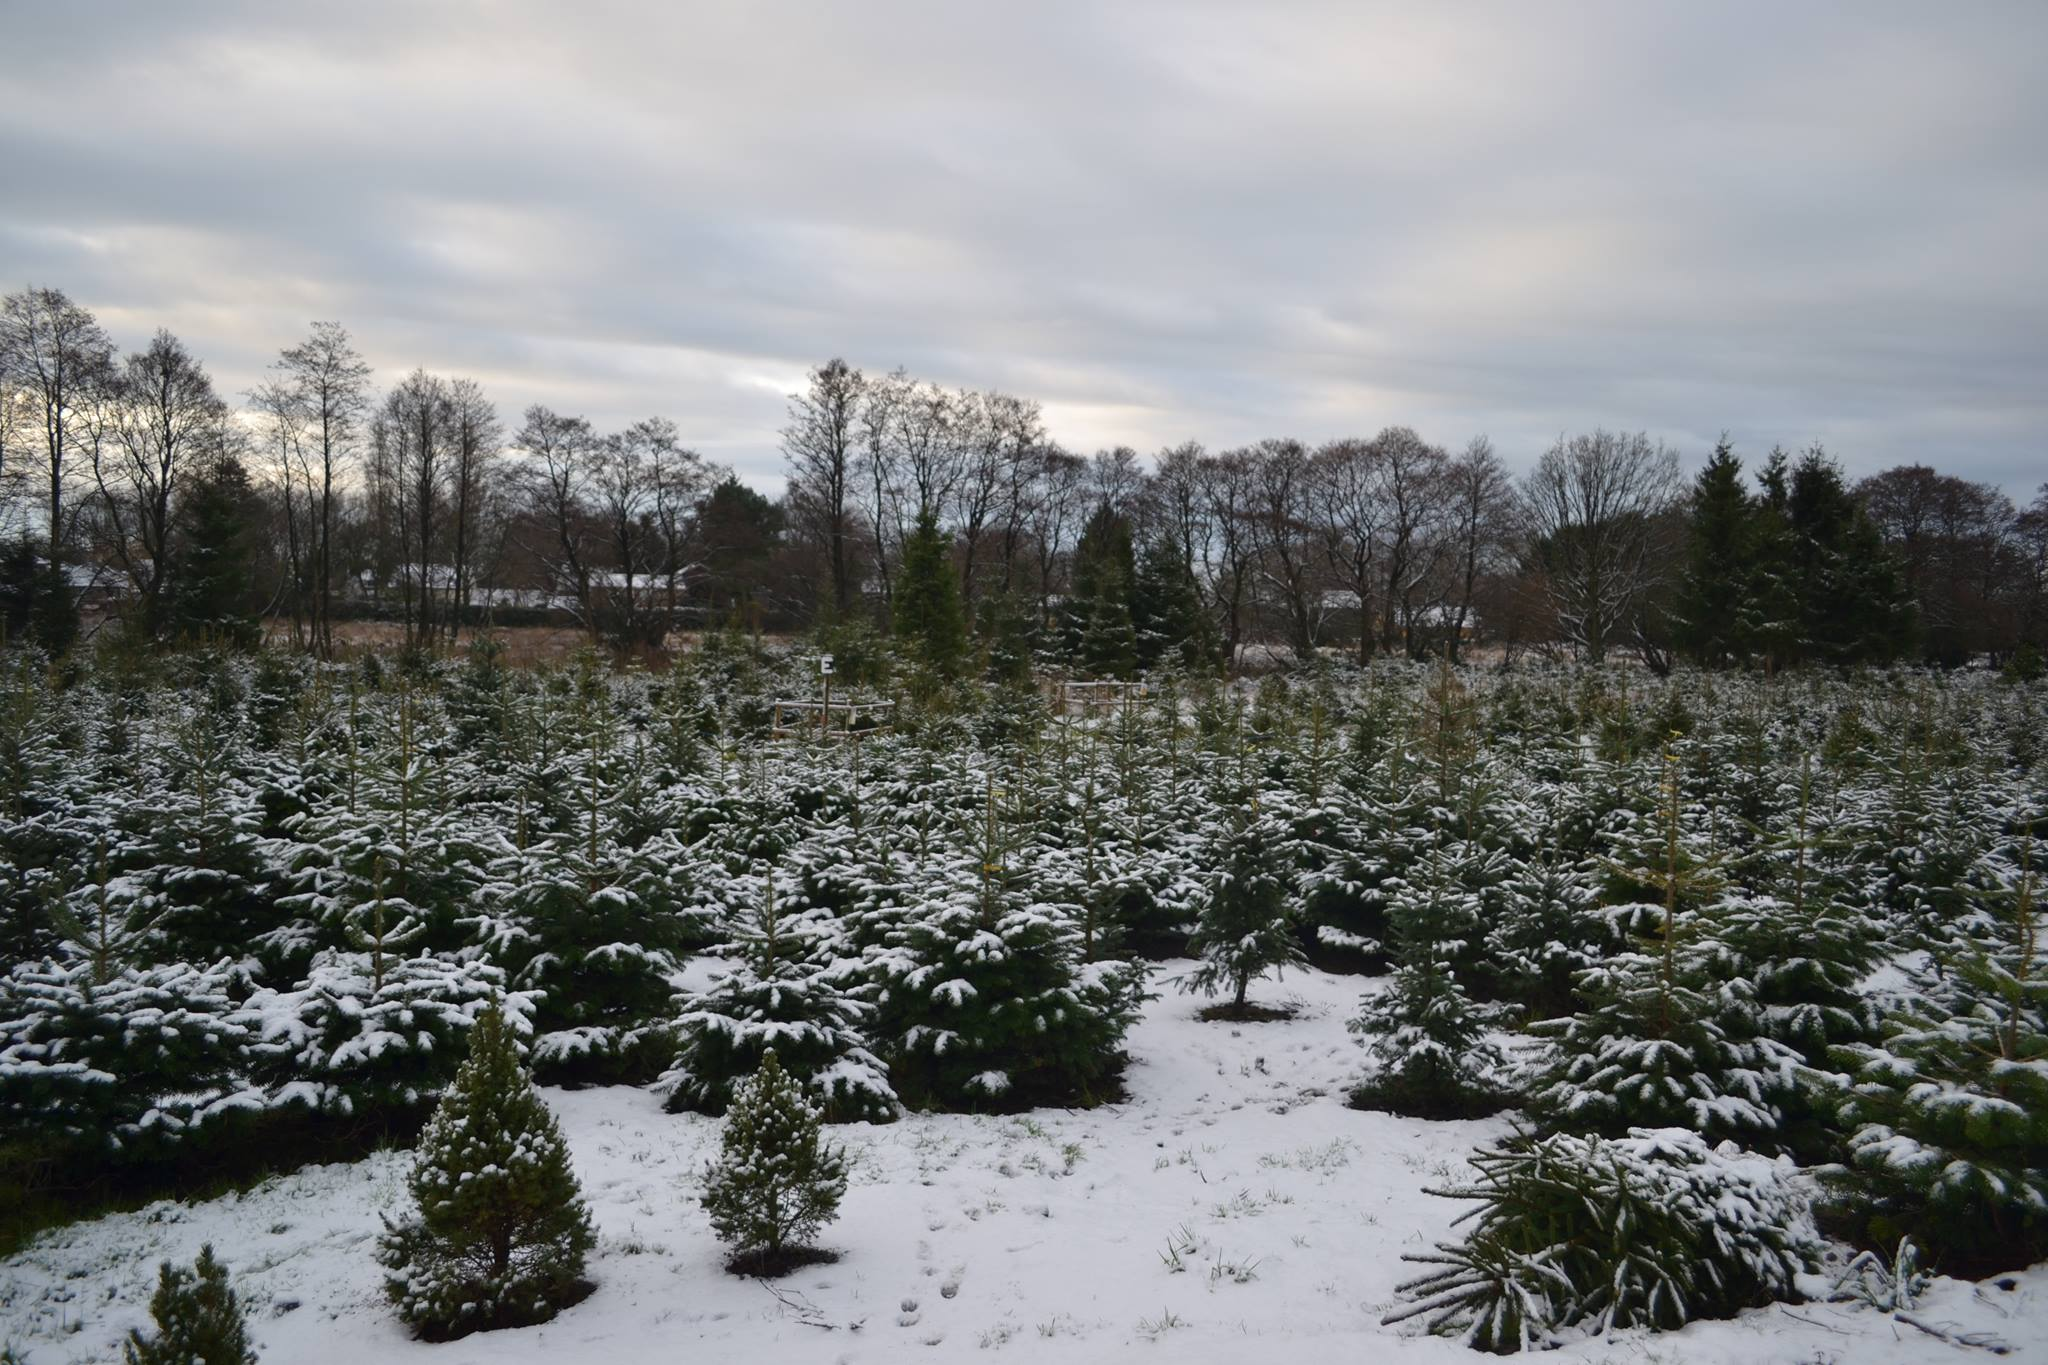 The Best Festive Christmas Tree Farms Near Manchester Manchester Wire